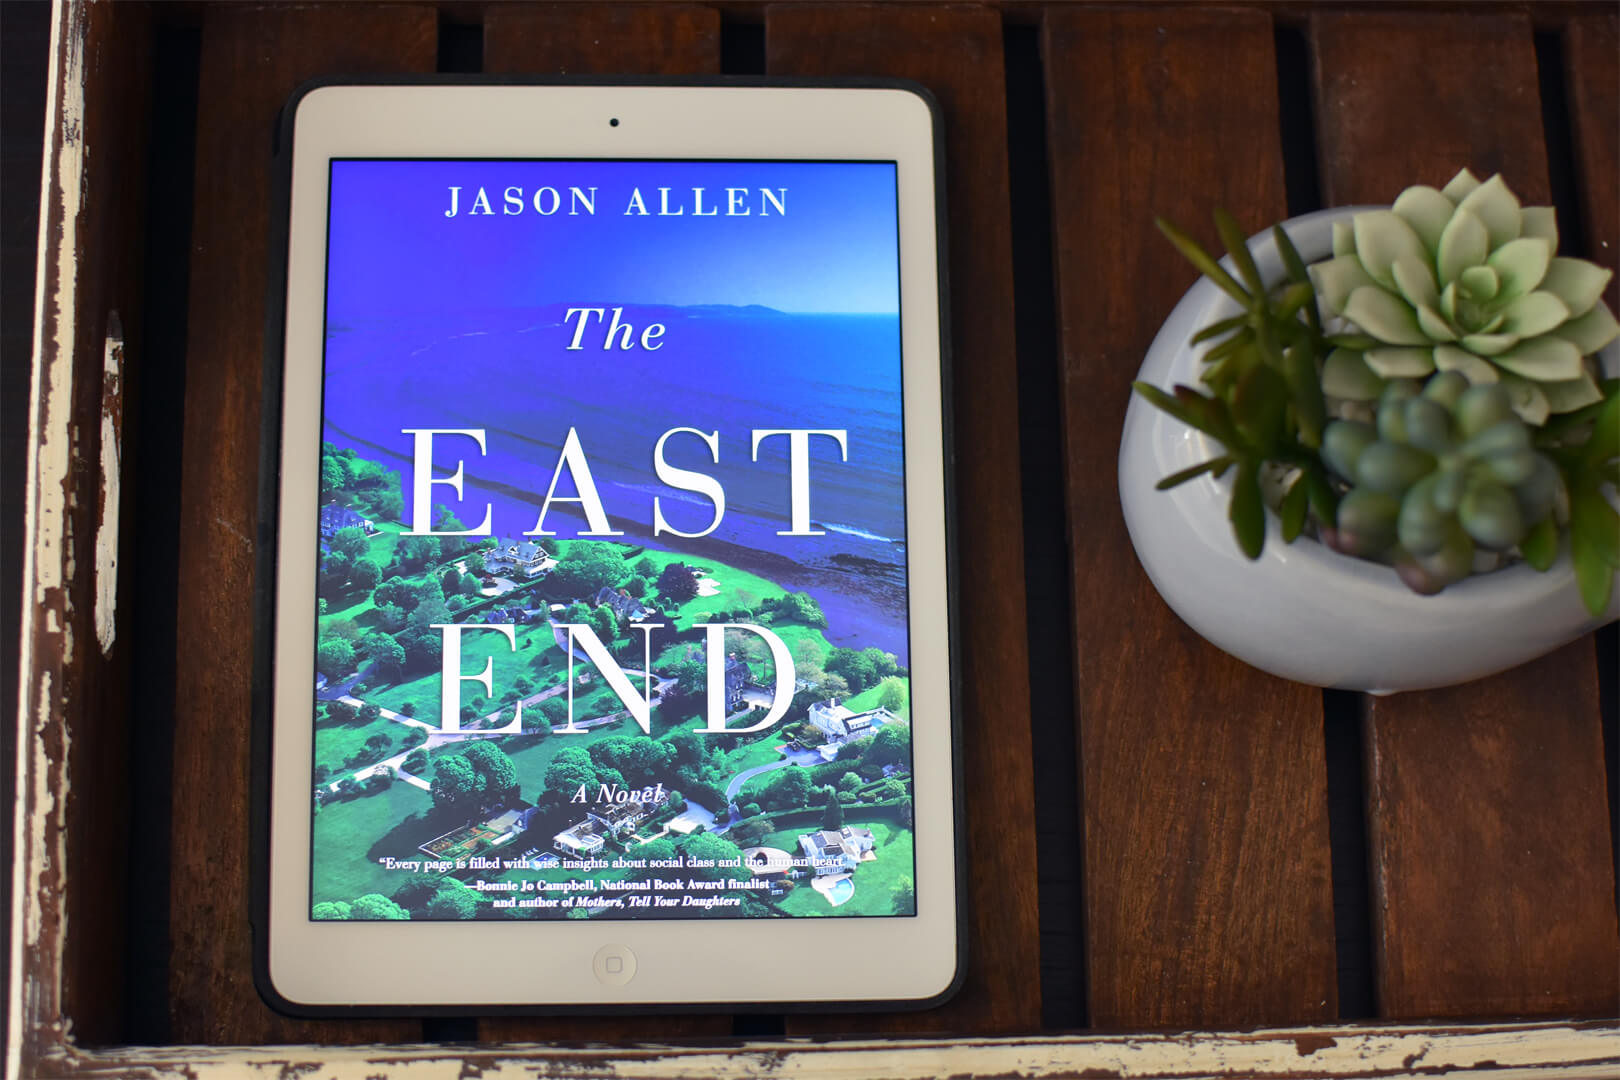 The East End By Jason Allen Review - Book Club Chat